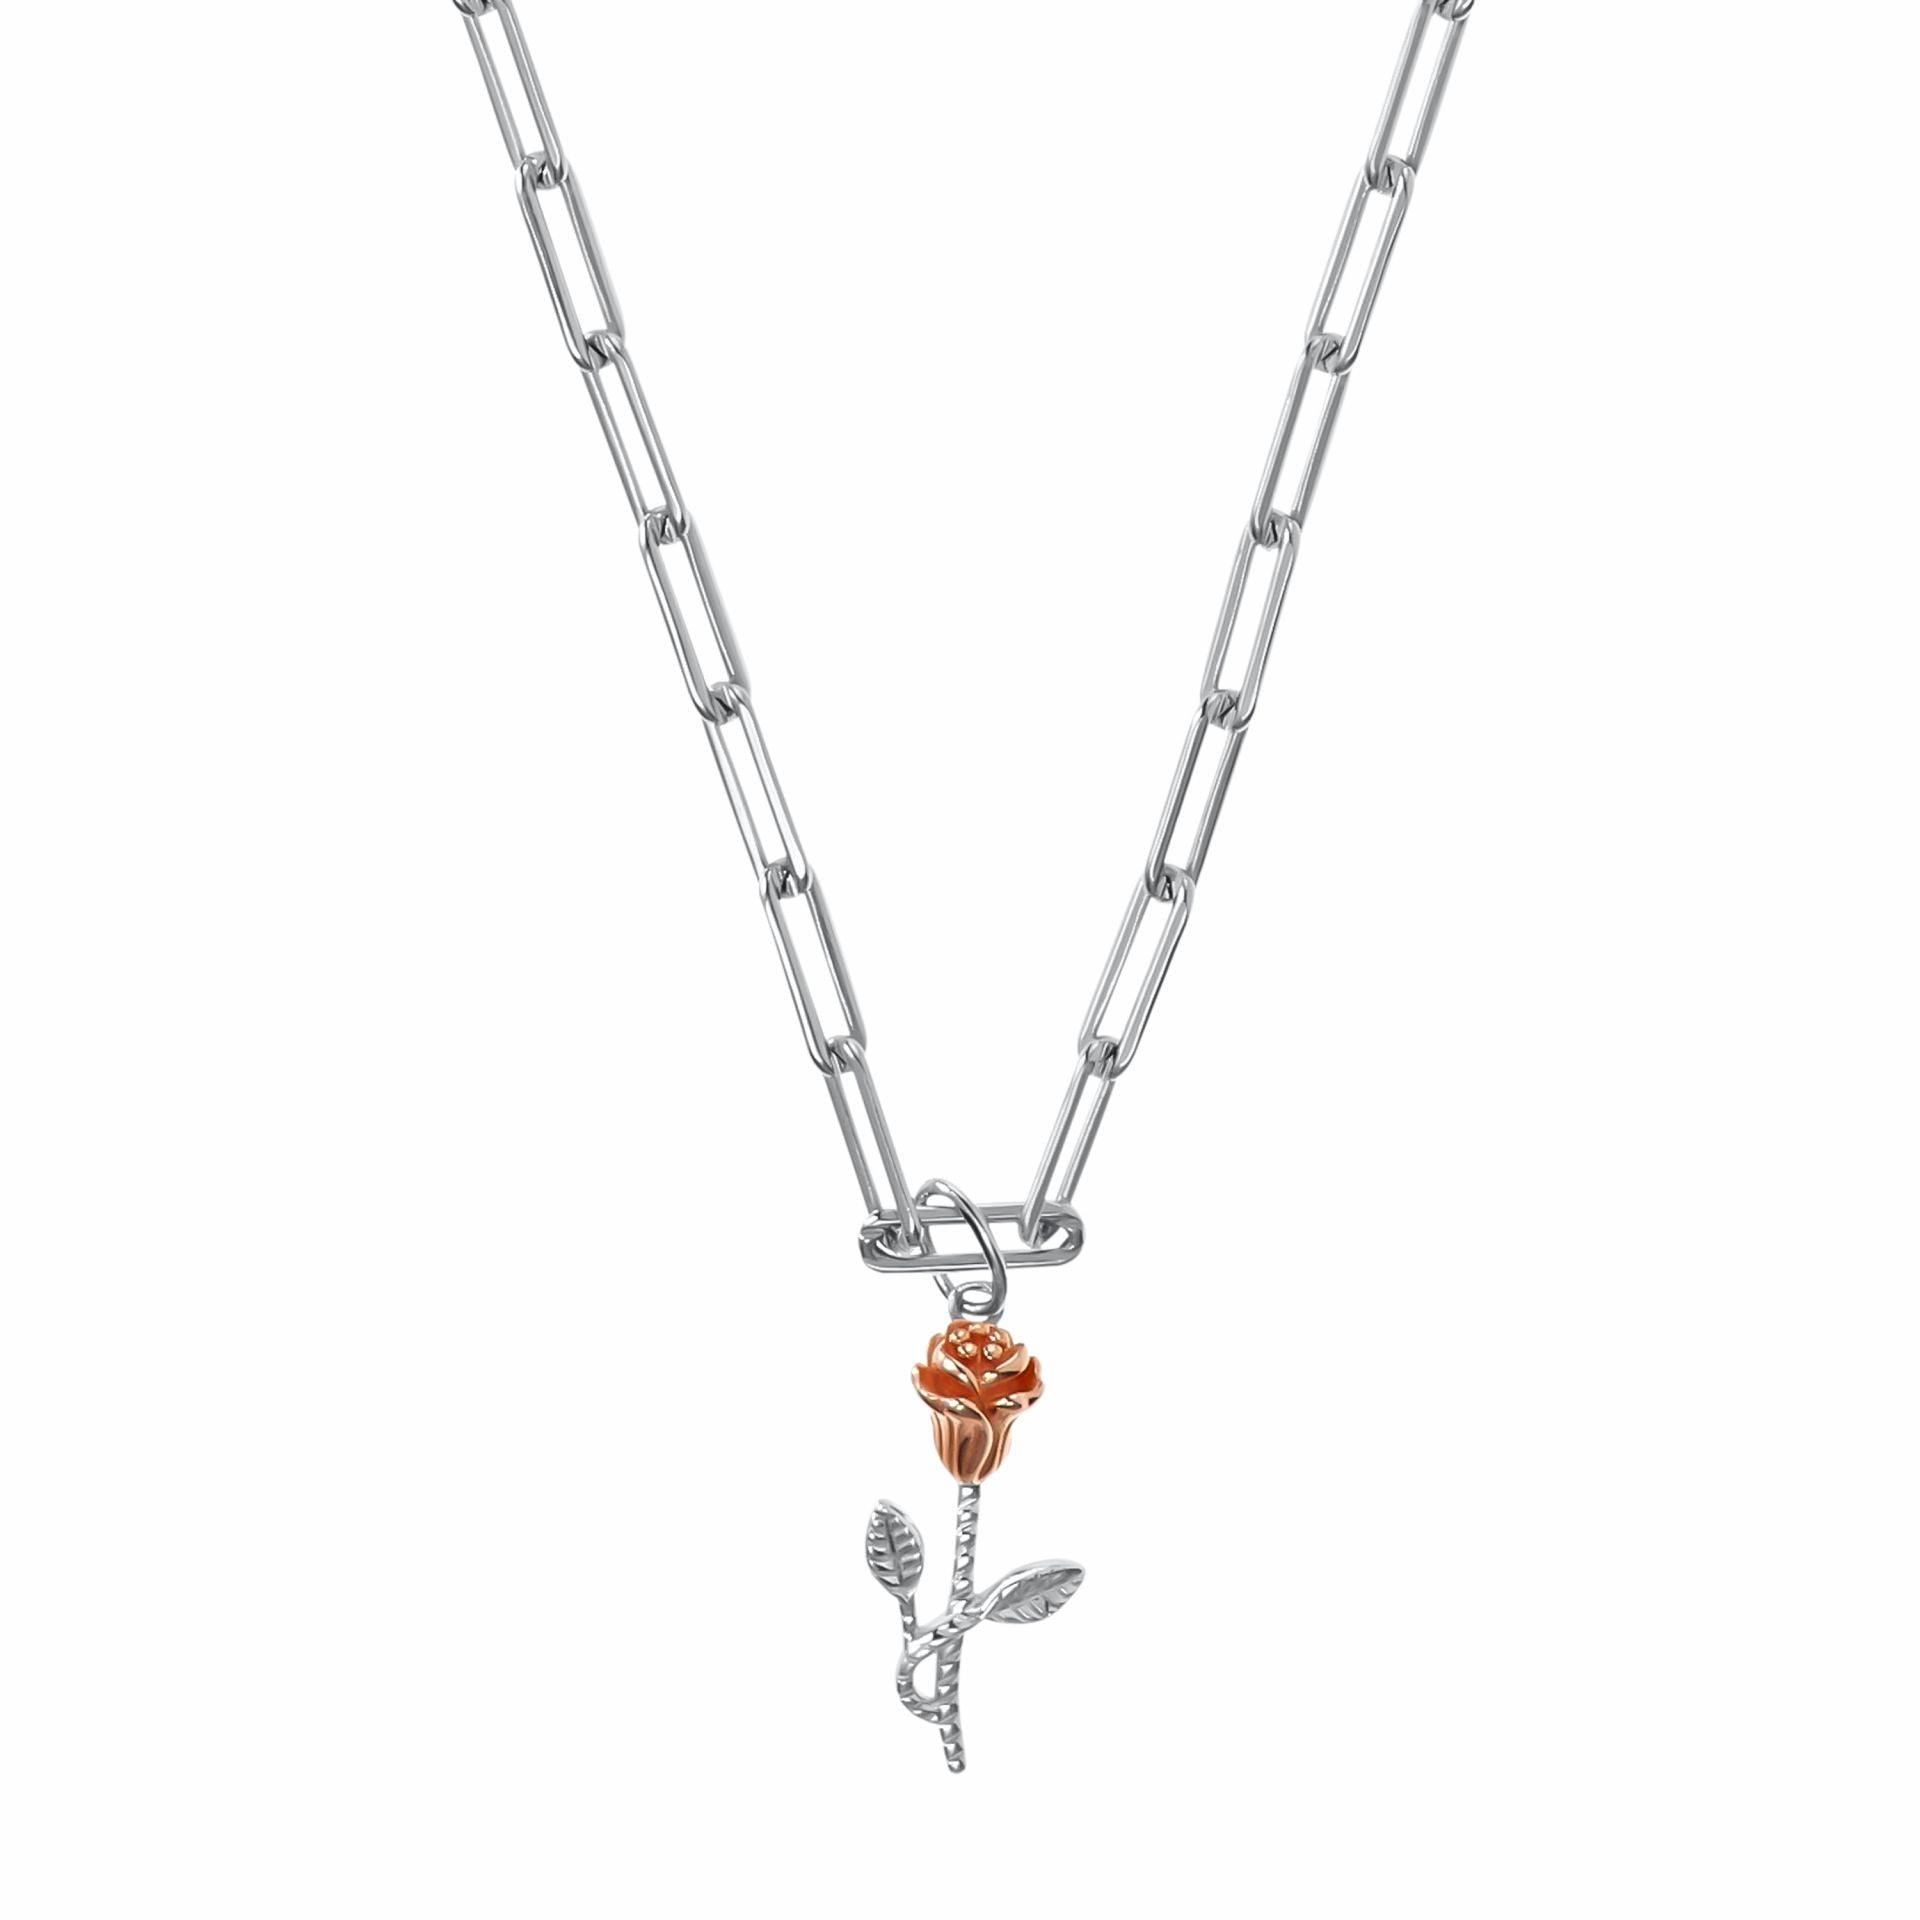 THE ROSE necklace with pendant, choker, sterling silver 925, rose bicolor